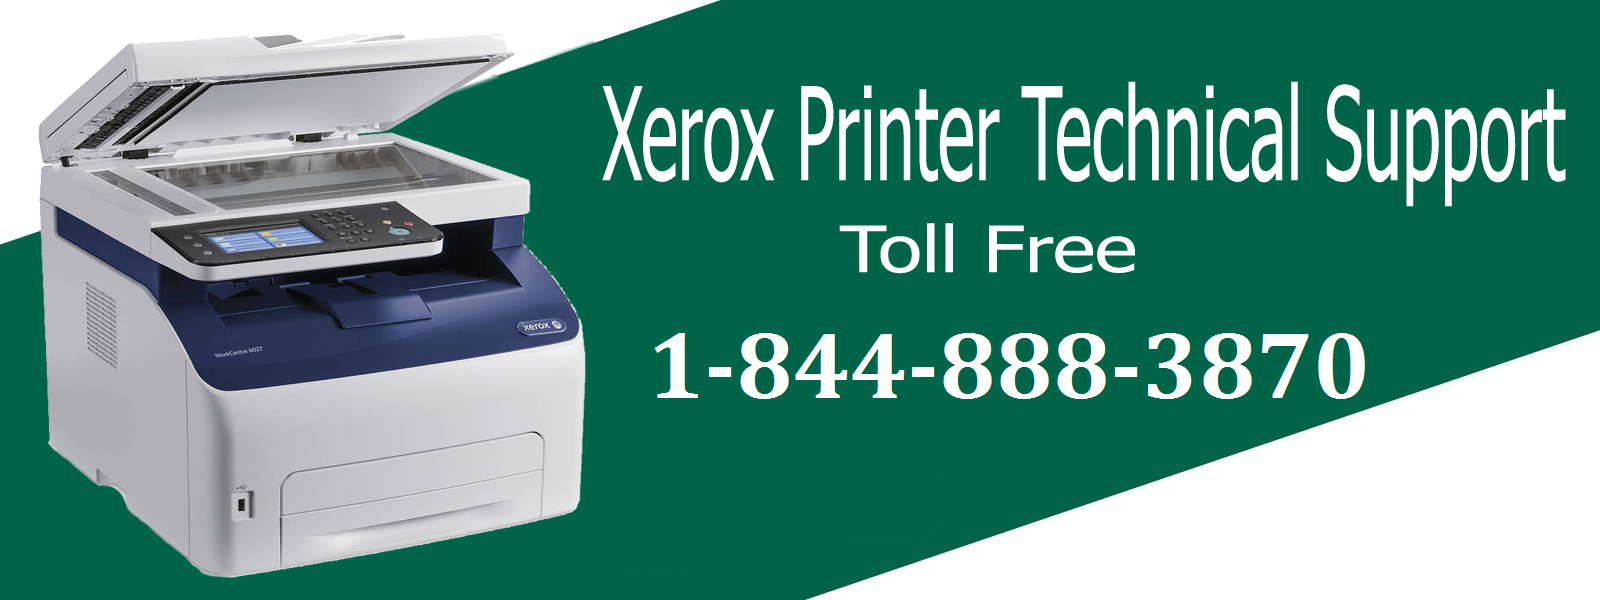 Here On Behalf Of Xerox Tech Support I Would Like To Share Some